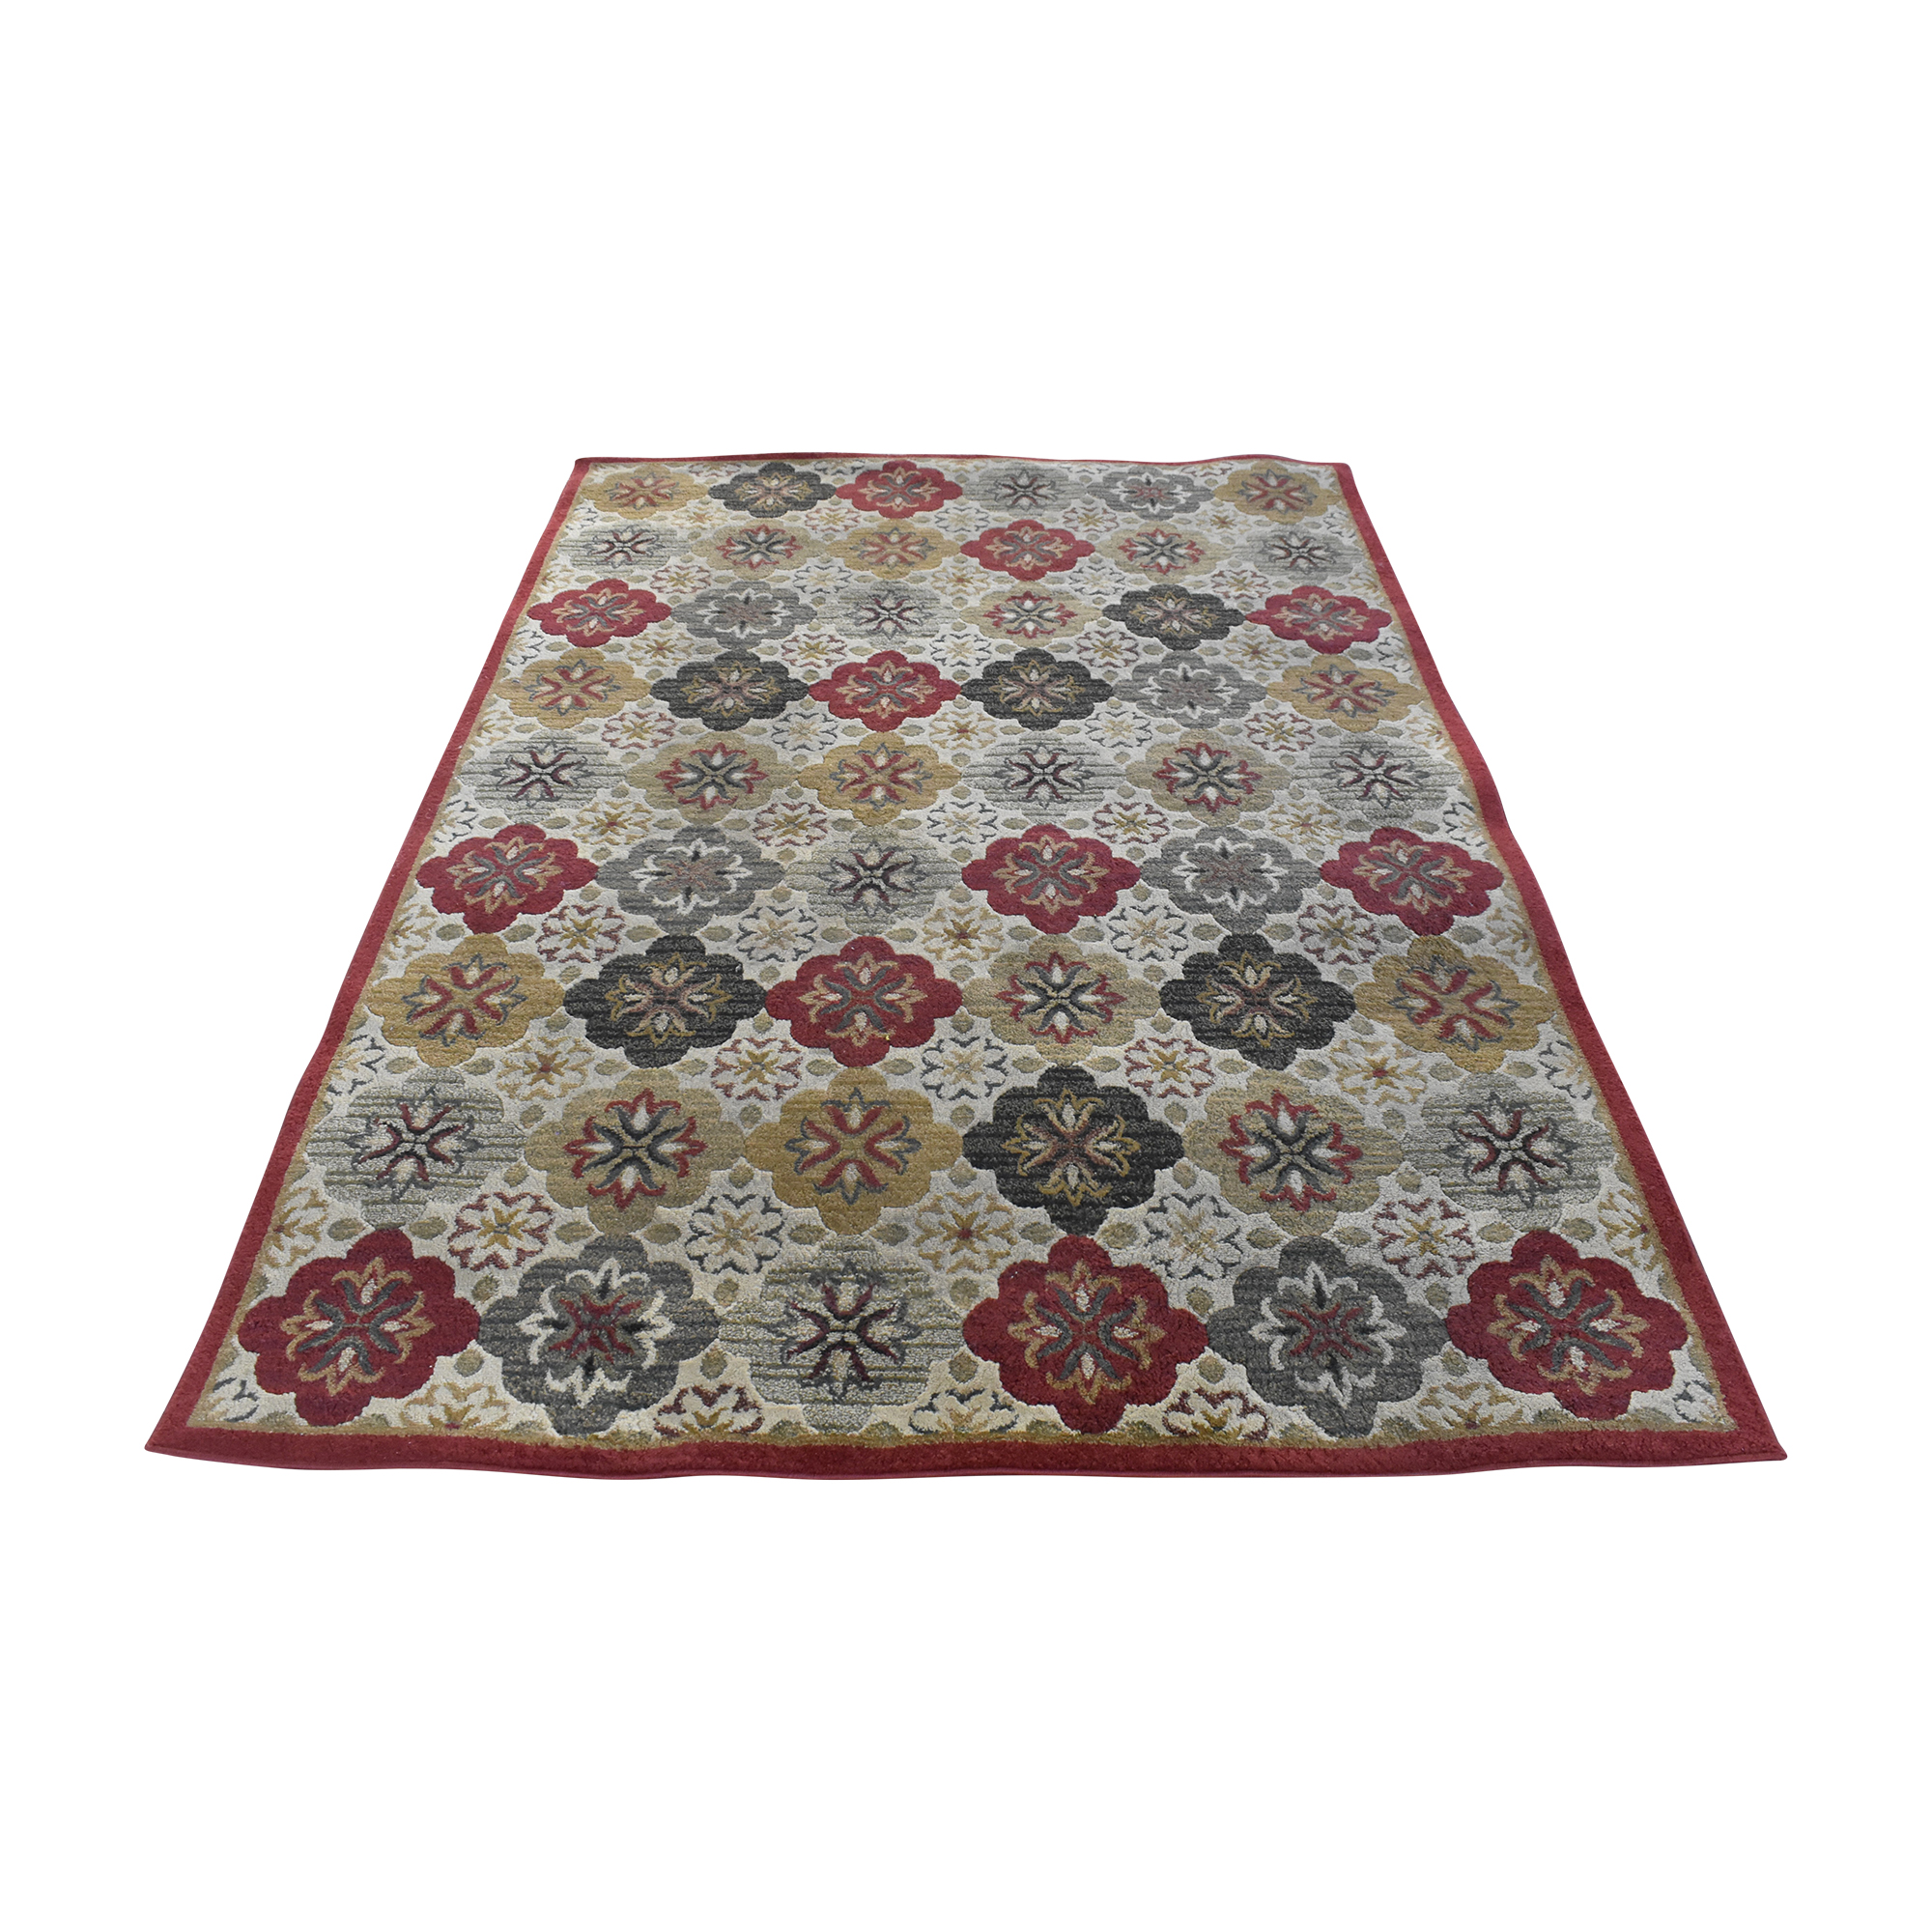 Fiezy Rugs Fiezy Rugs Keystone Collection Area Rug second hand